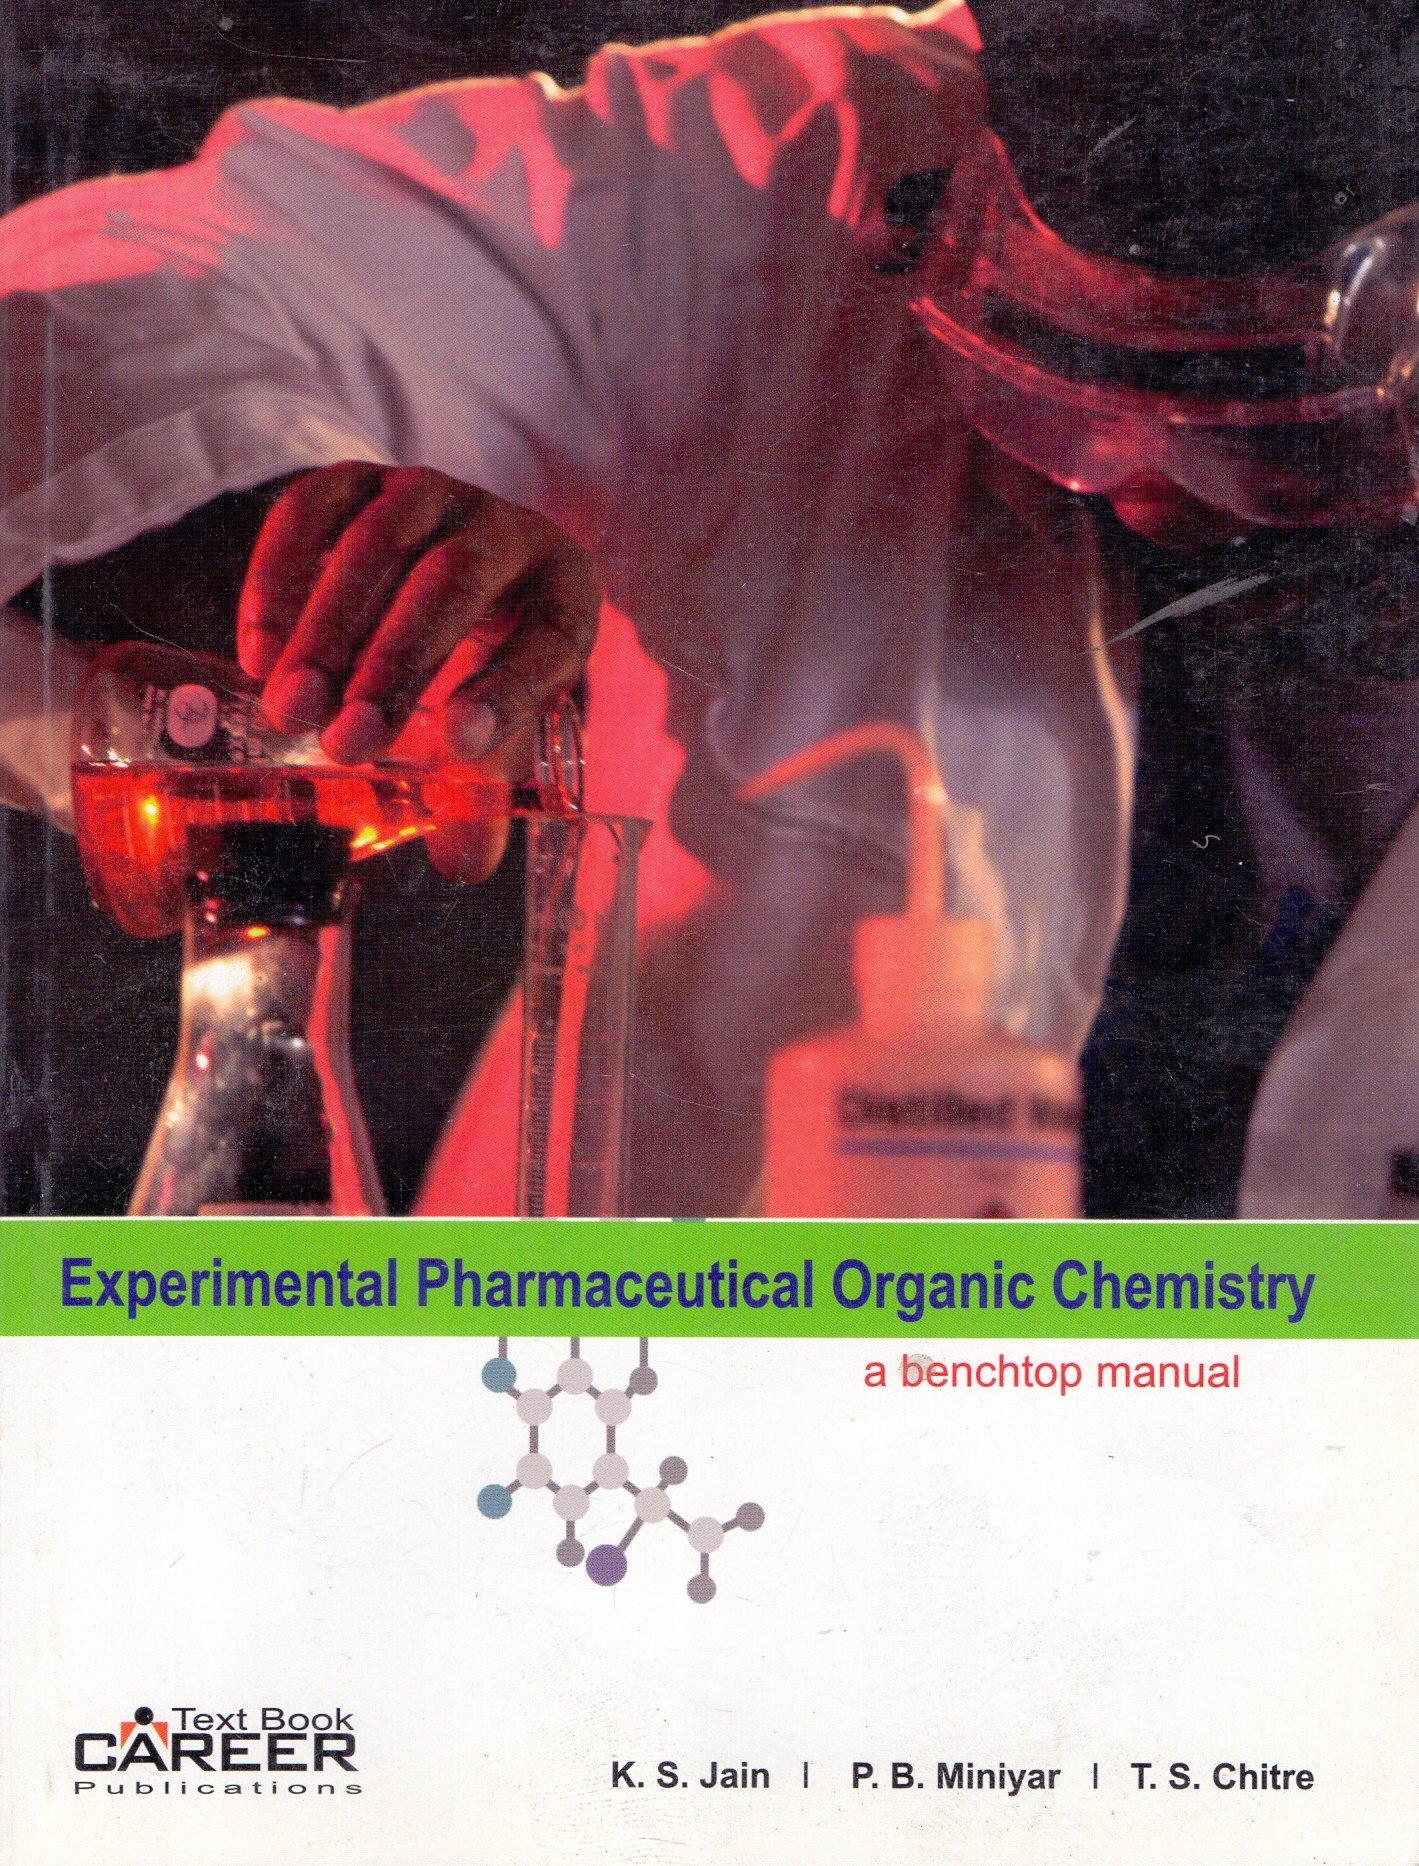 Buy Experimental Pharmaceutical Organic Chemistry: A Benchtop Manual Book  Online at Low Prices in India | Experimental Pharmaceutical Organic  Chemistry: A ...